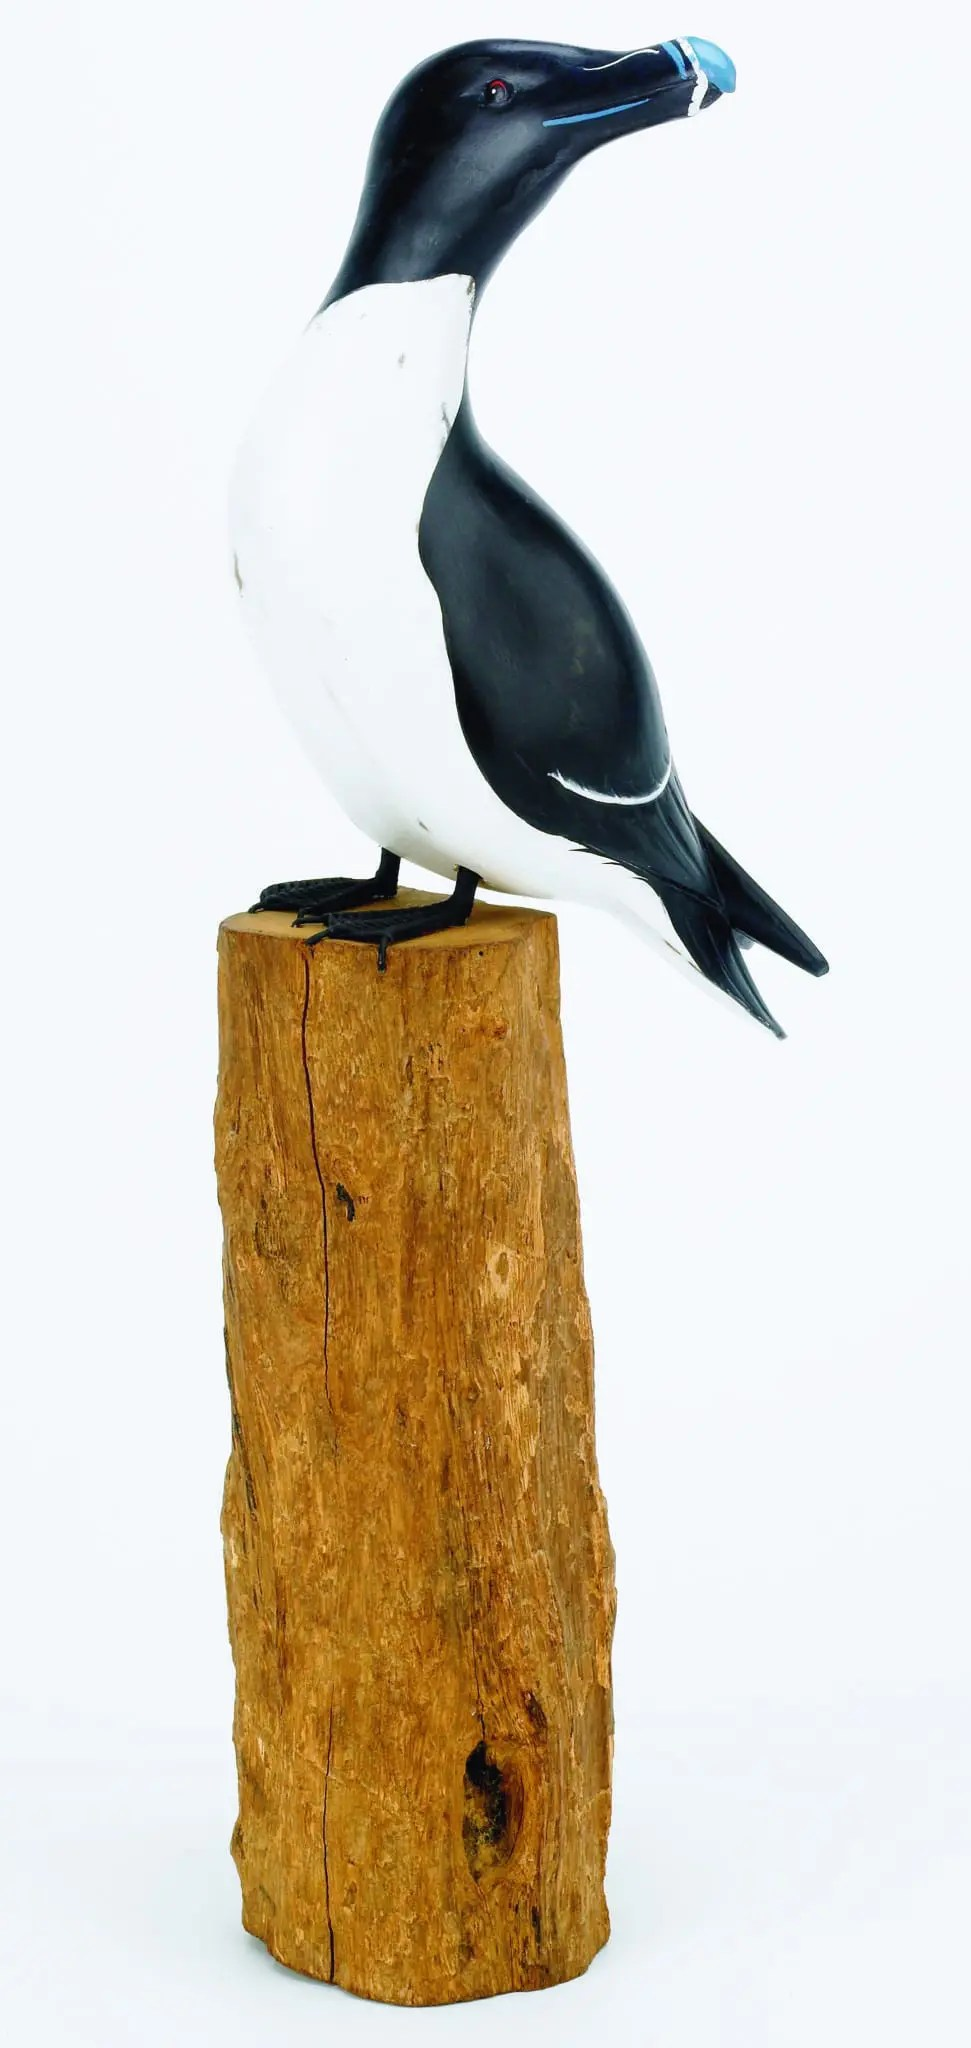 Archipelago Razorbill Wood Carving